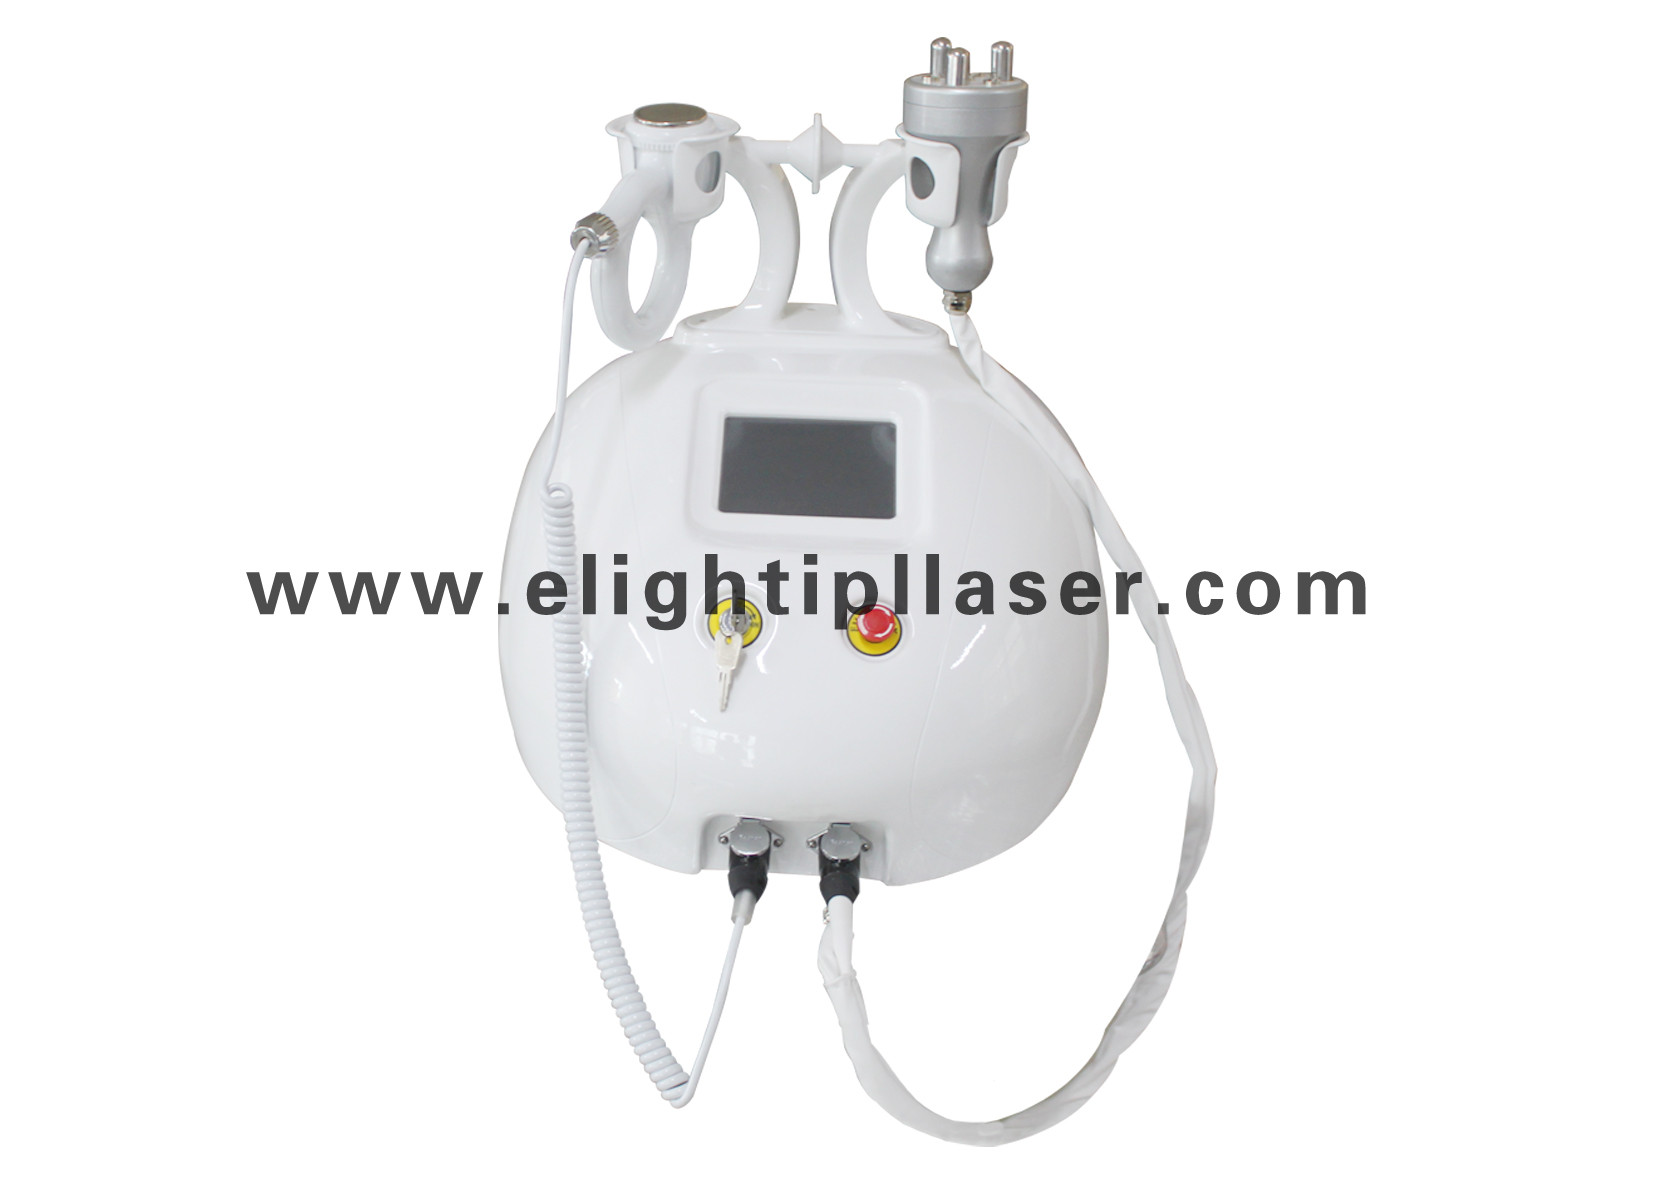 Fat Burning Non Invasive Lipo Laser Slimming Machine For Body Shaping